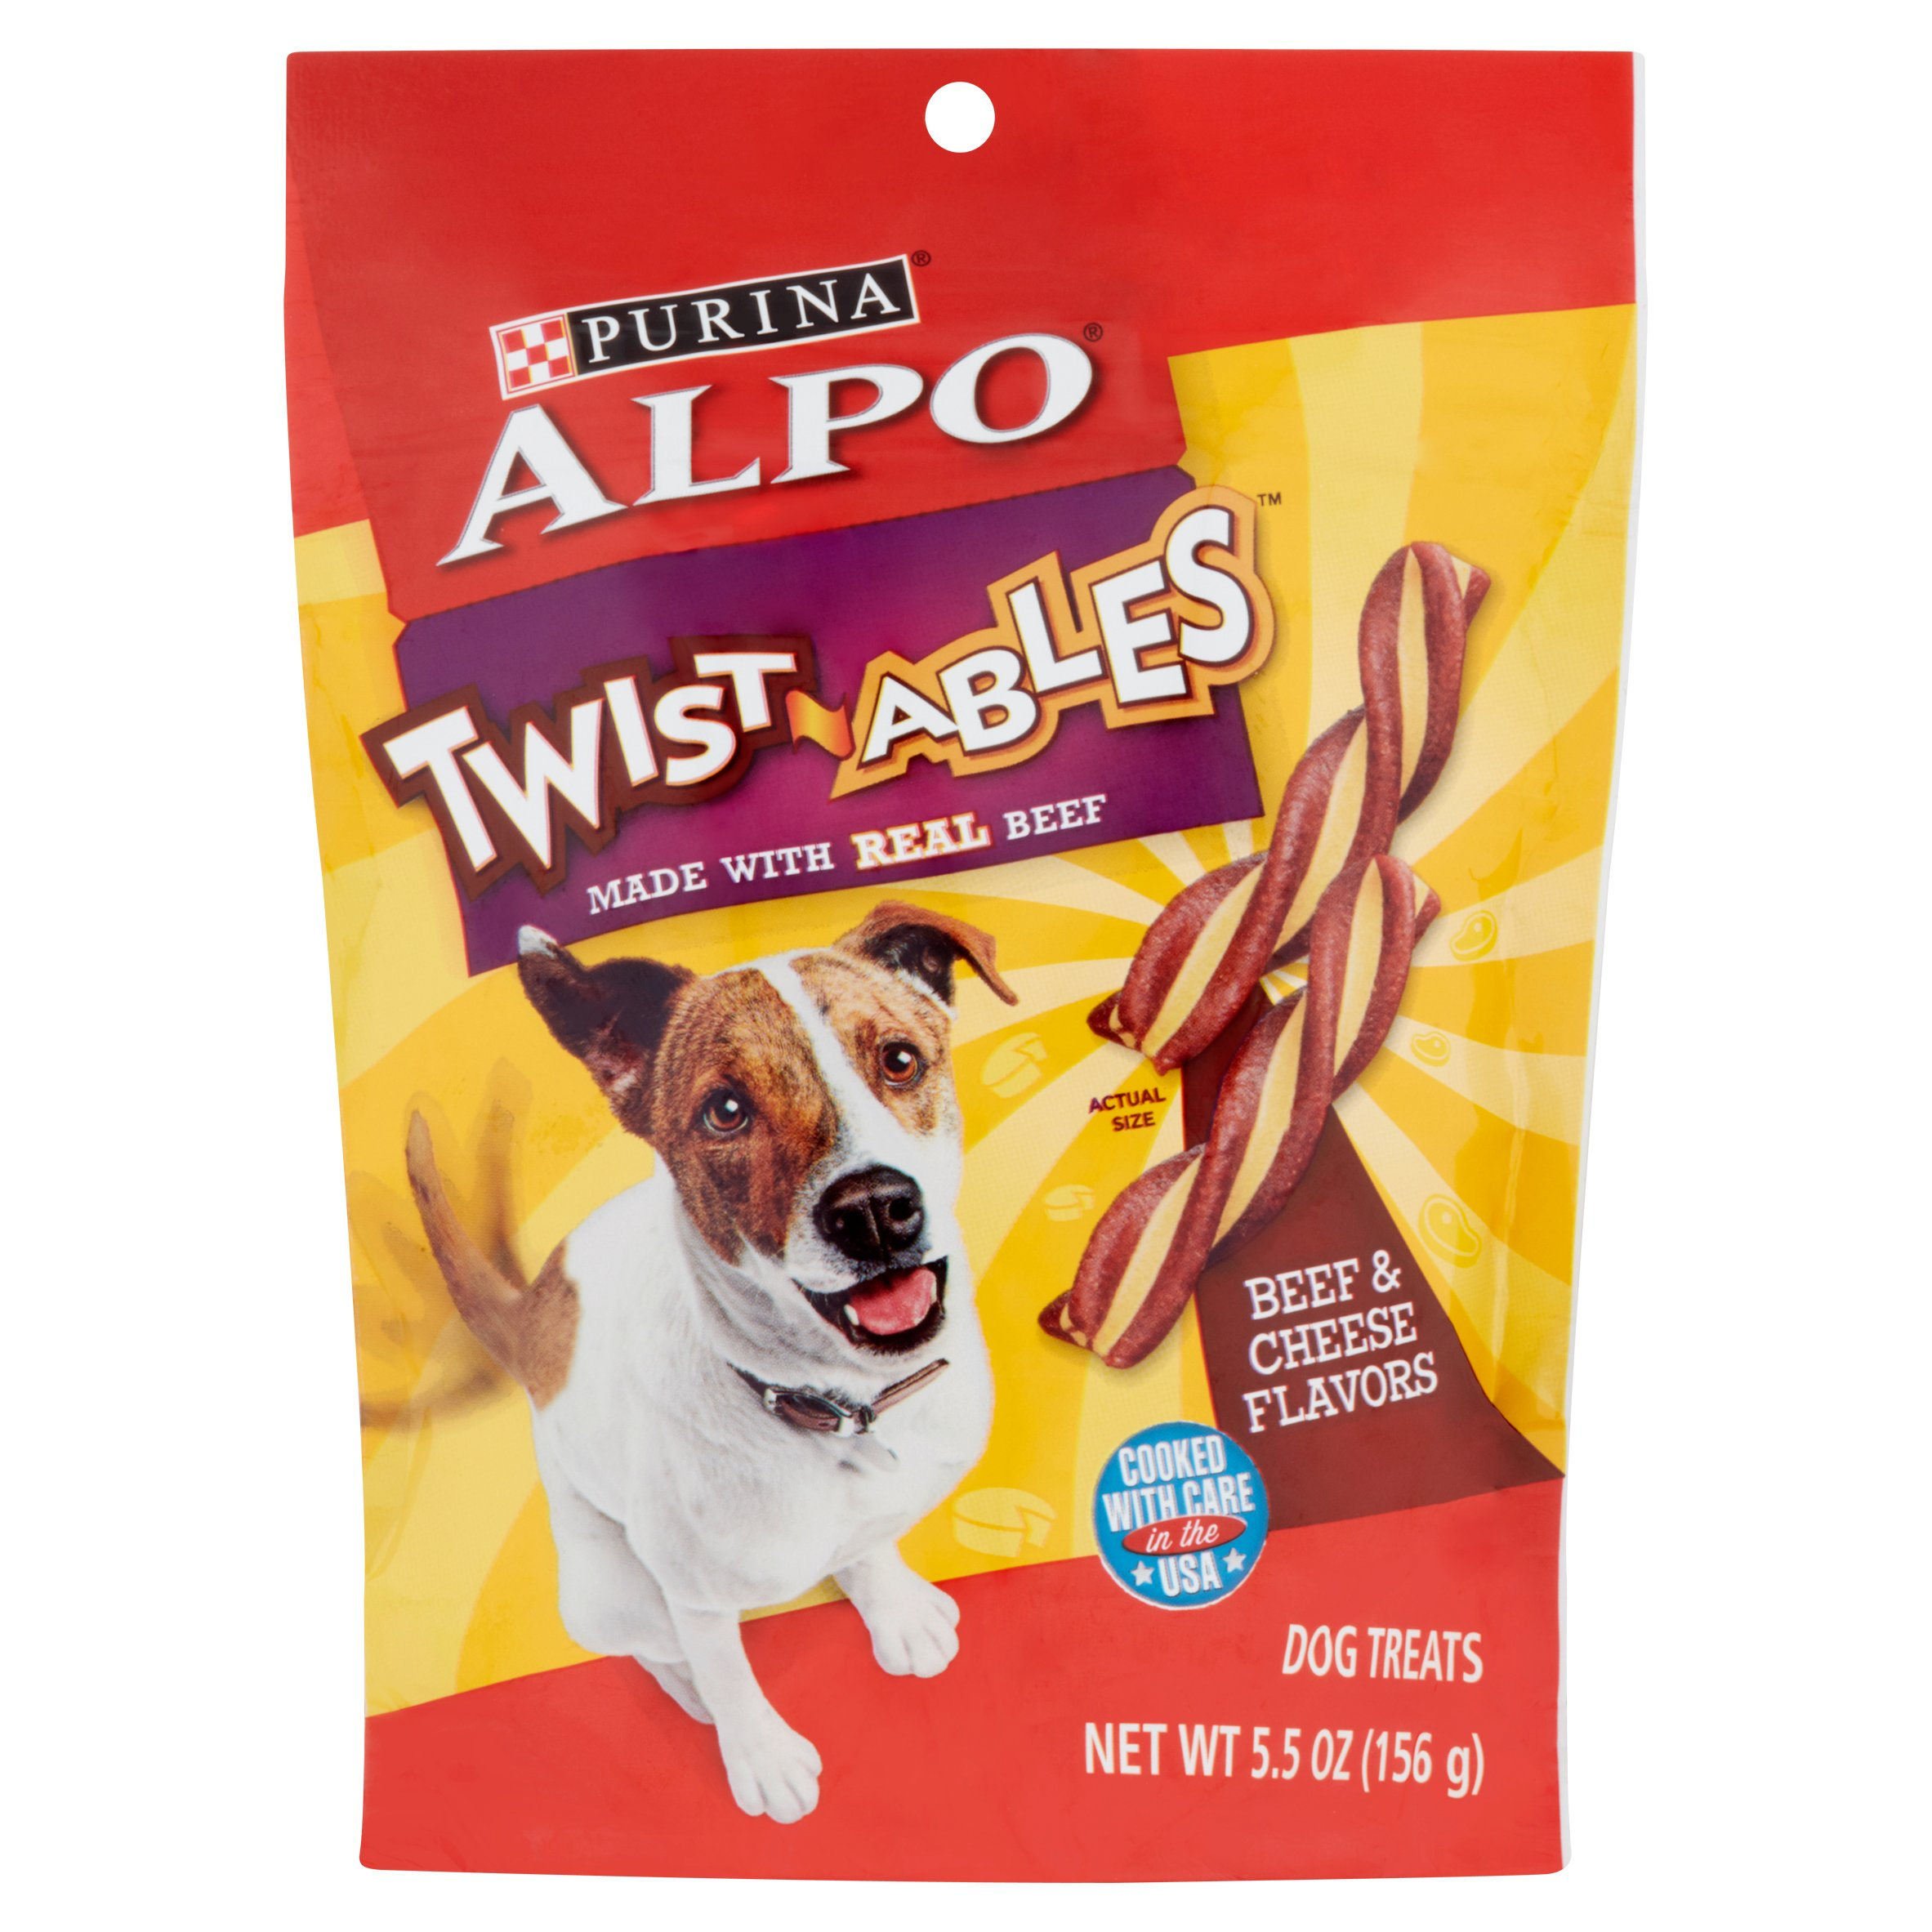 Purina ALPO Twist-ables Beef and Cheese Flavors Dog Treats, 5.5 oz Pouch